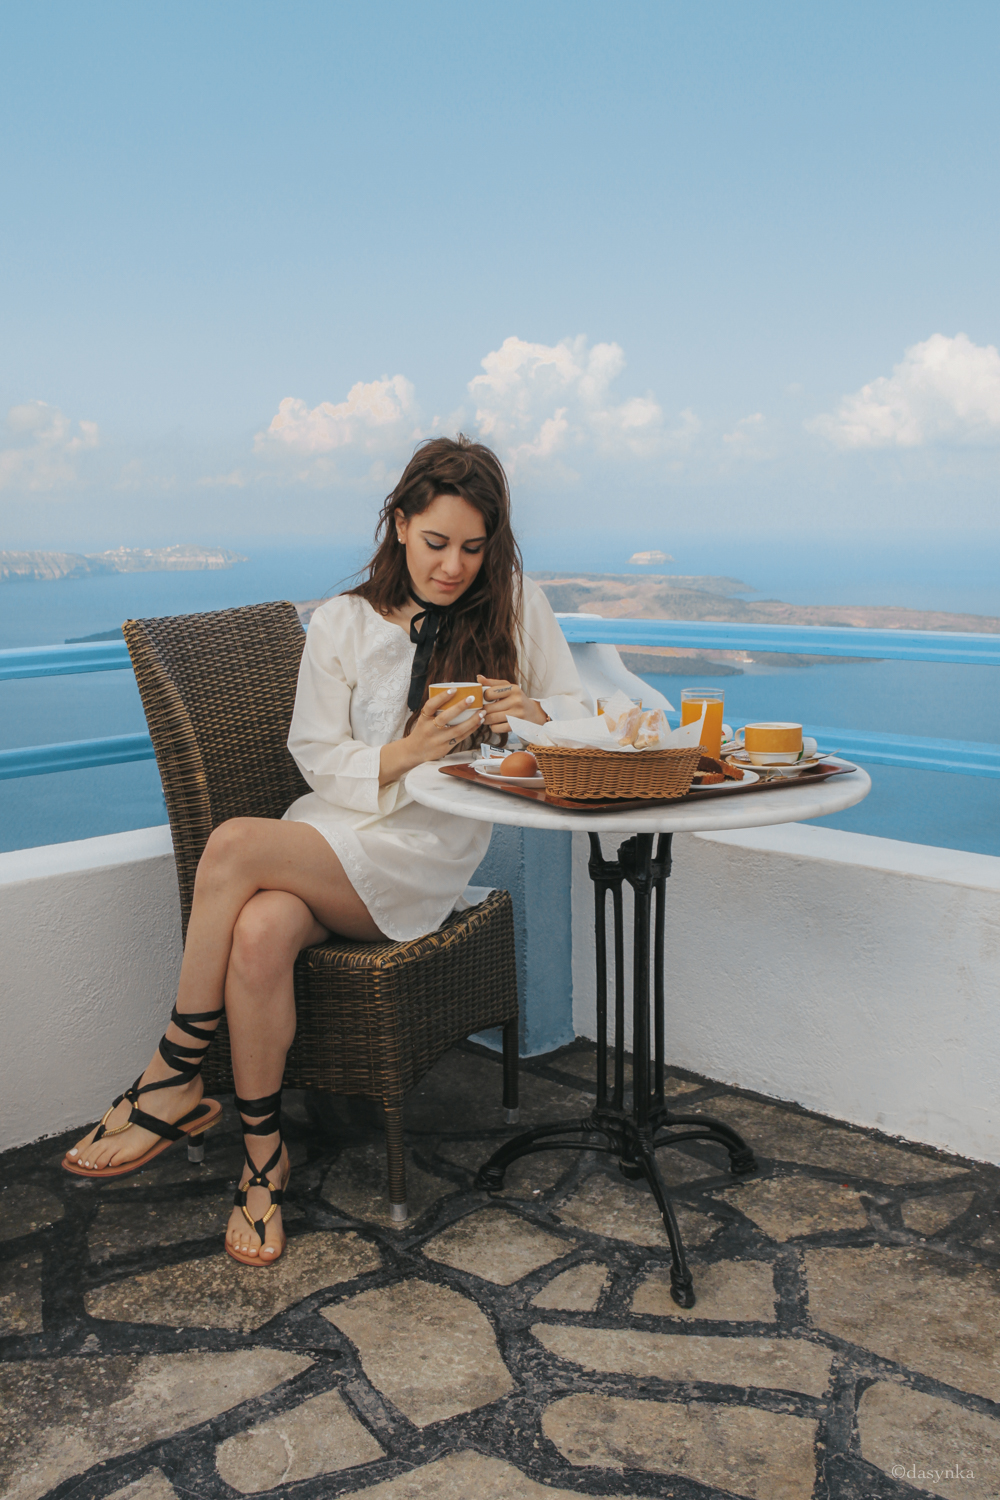 dasynka-fashion-blog-blogger-influencer-inspiration-shooting-model-globettrotter-travel-girl-lookbook-instagram-long-hair-street-style-casual-italy-lifestyle-outfit-poses-santorini-greek-greece-island-caldera-fira-oia-arkotiri-blue-domes-off-shoulder-blouse-shorts-white-louis-vuitton-pochette-hermes-bracelet-forever21-backpack-asos-hat-big-inspo-look-breakfast-view